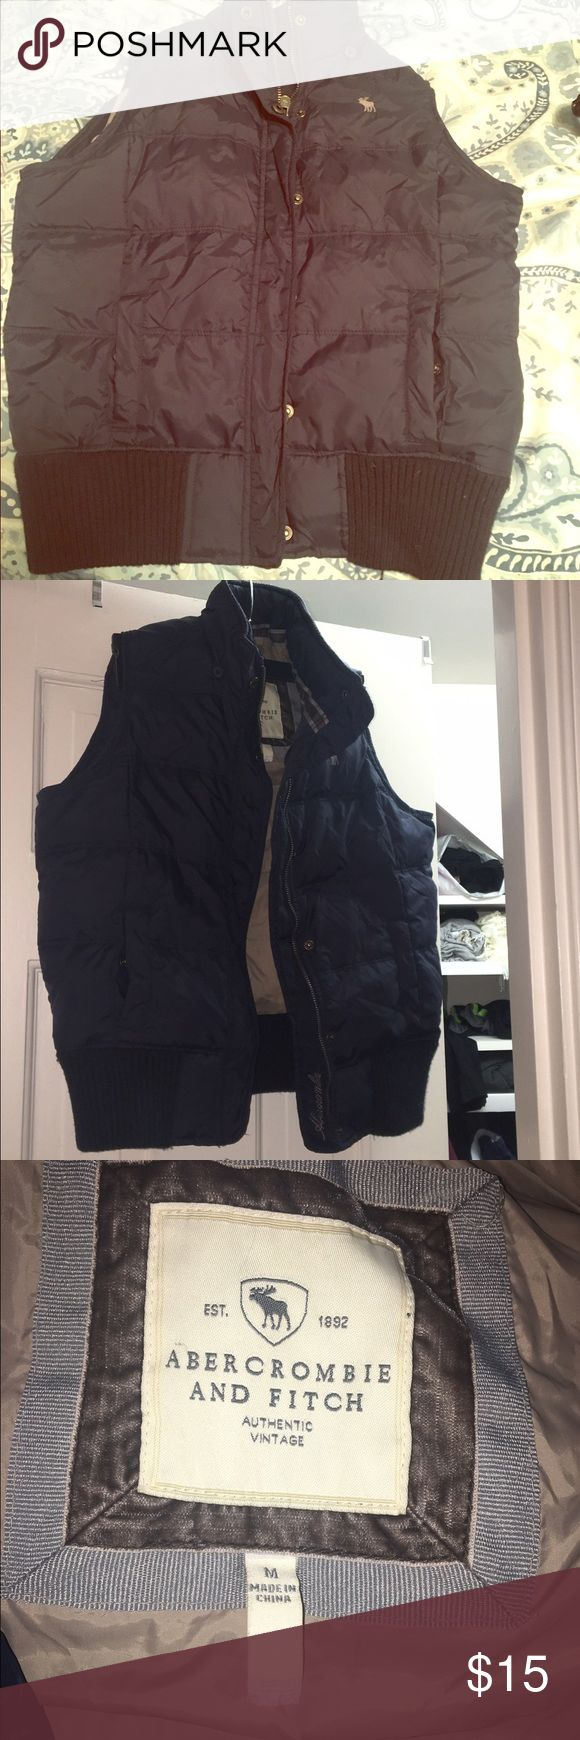 Womens Abercrombie and Fitch Puffer vest sz Med Womens Navy Blue Abercrombie and Fitch Puffer vest size Medium Abercrombie & Fitch Jackets & Coats Vests